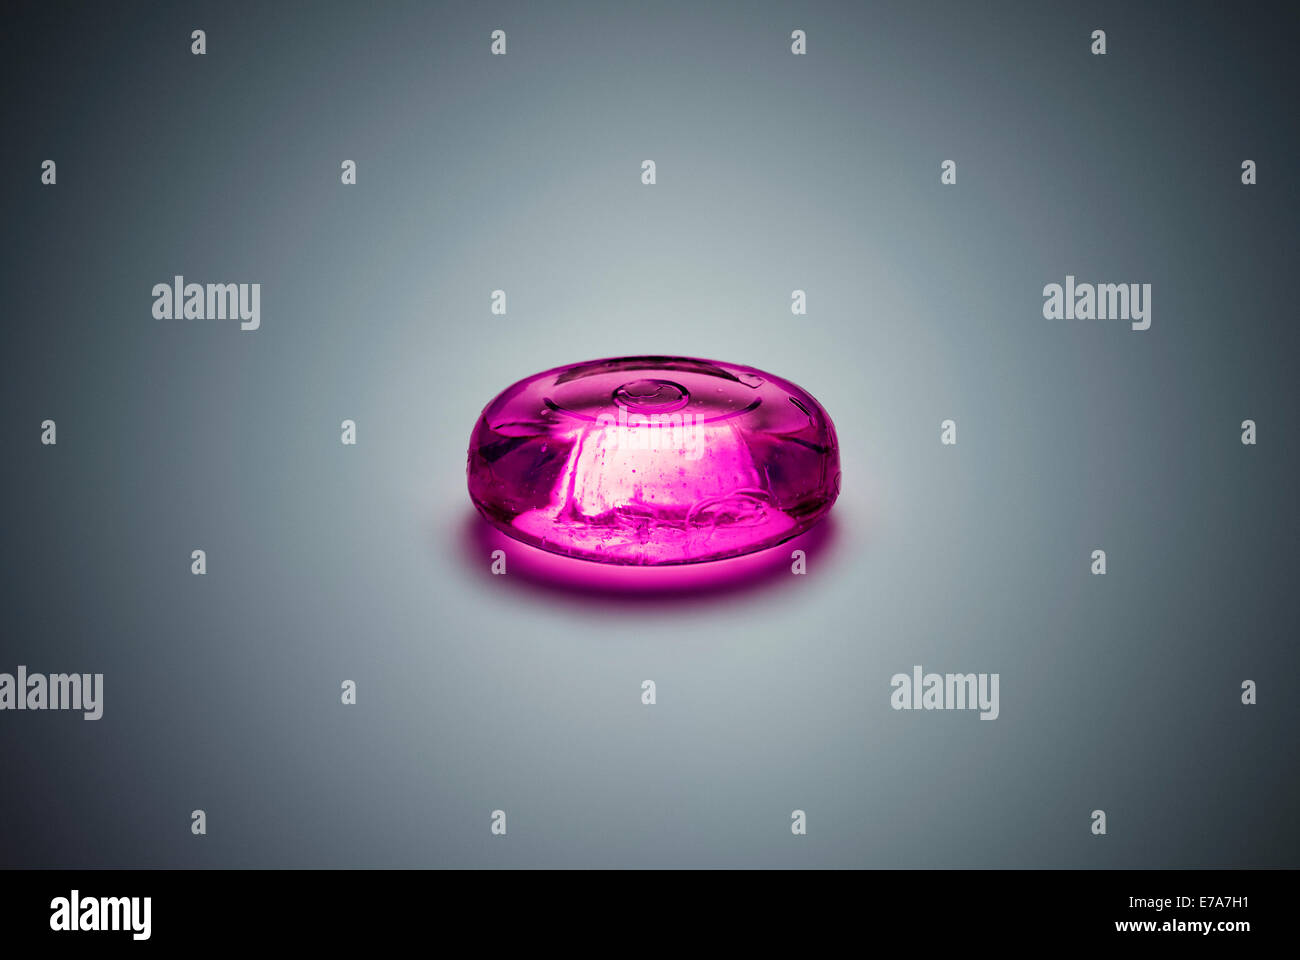 A piece of purple hard candy - Stock Image